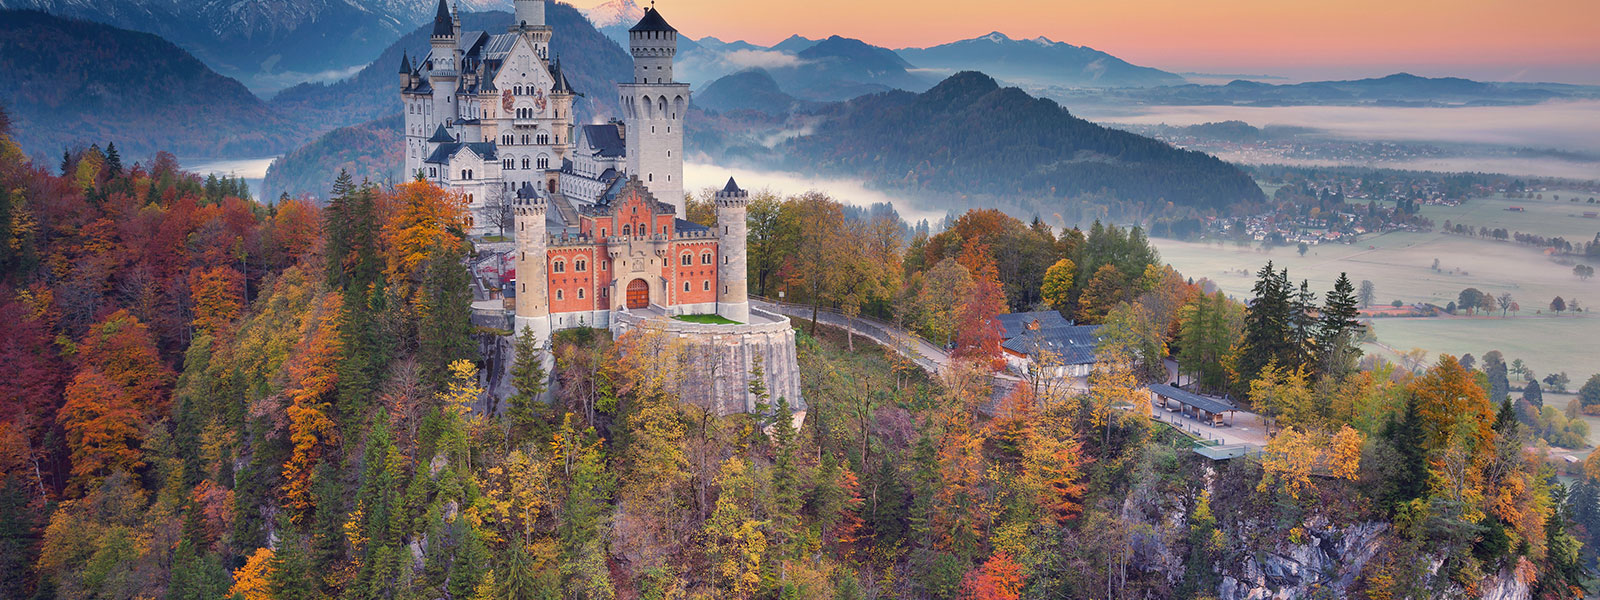 Sights to see in Germany